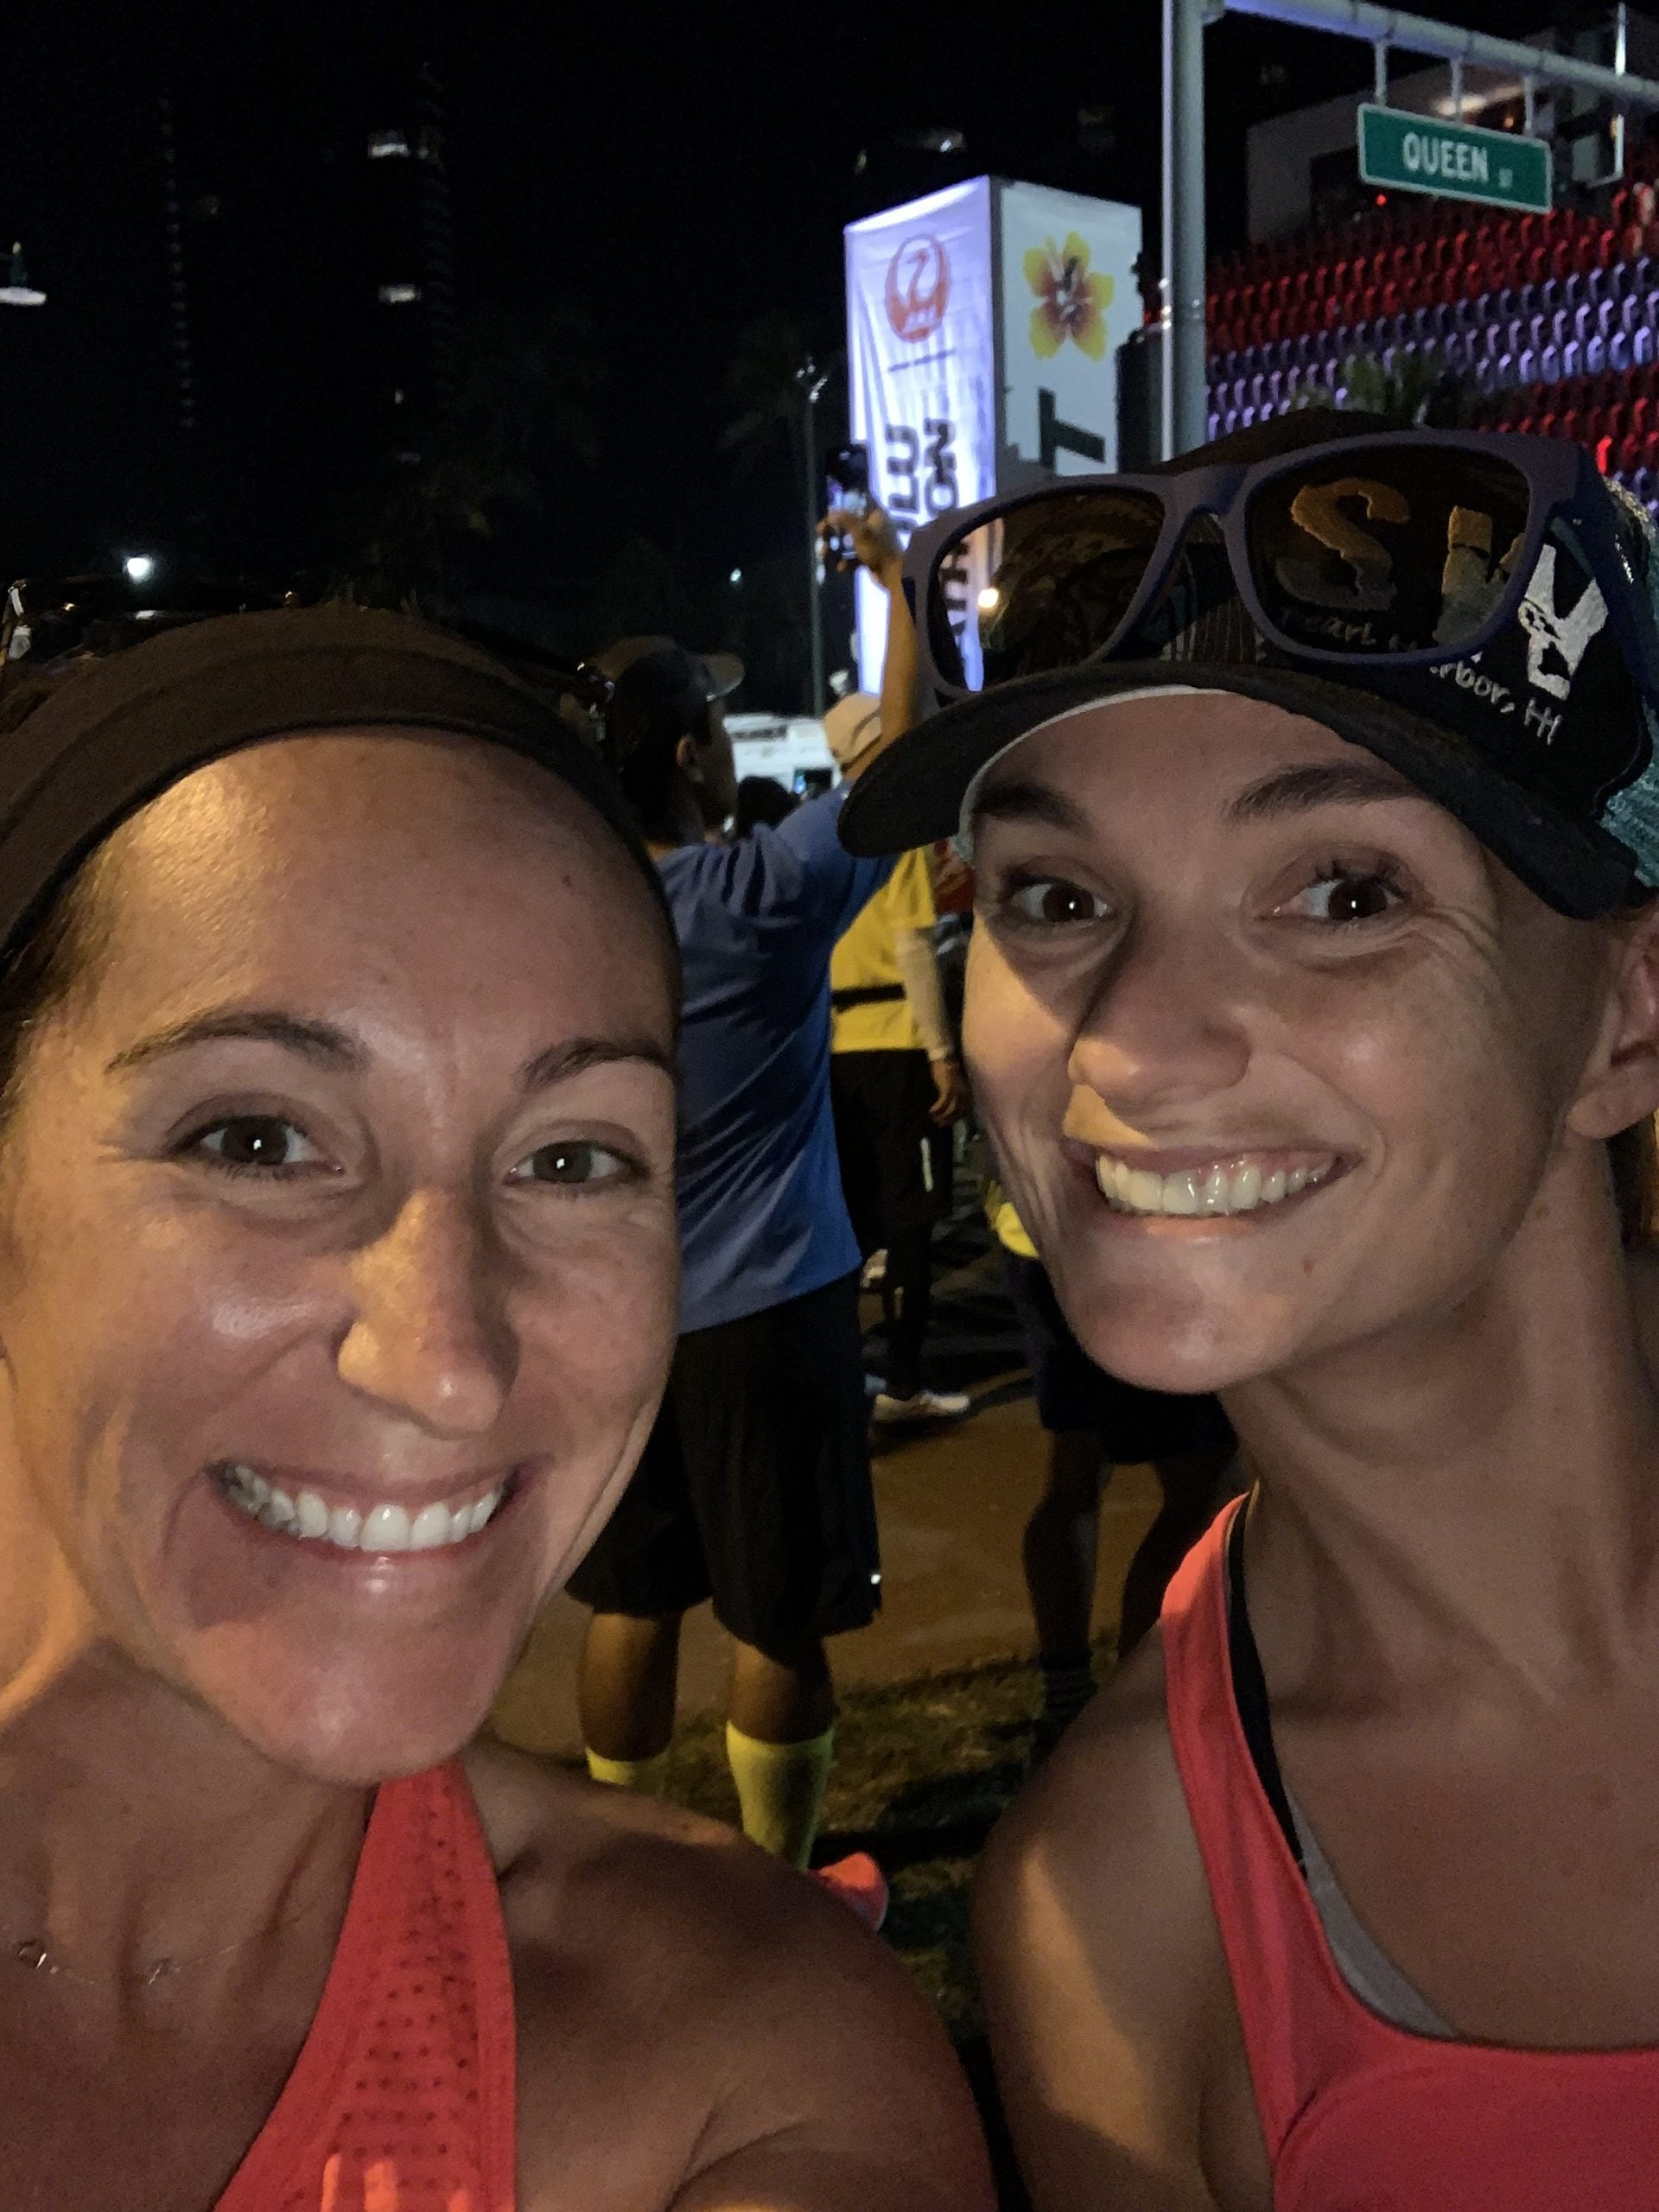 2019 Honolulu Marathon Recap - Honolulu Marathon - Honolulu Marathon Participants - Honolulu Marathon Course